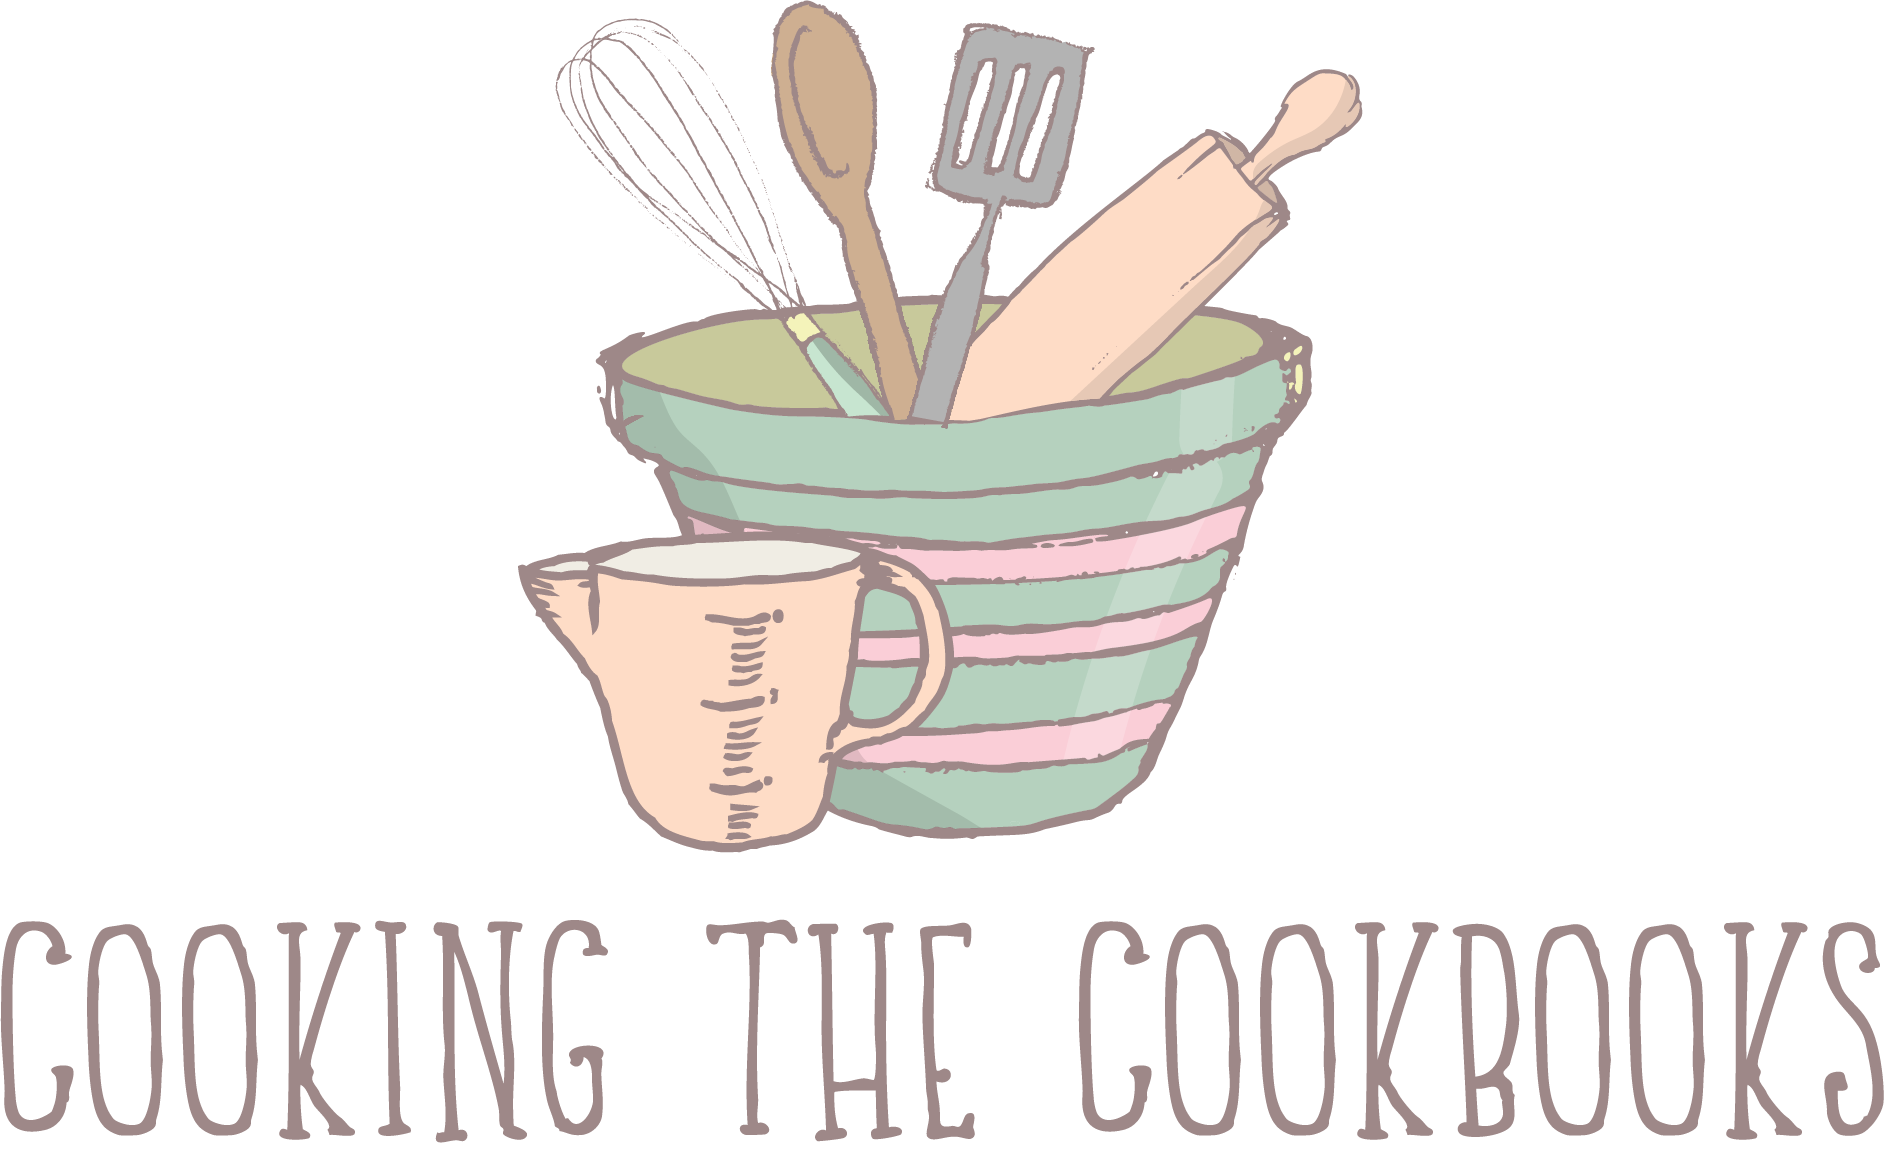 Cooking the cookbooks . Cookbook clipart cookbook covers